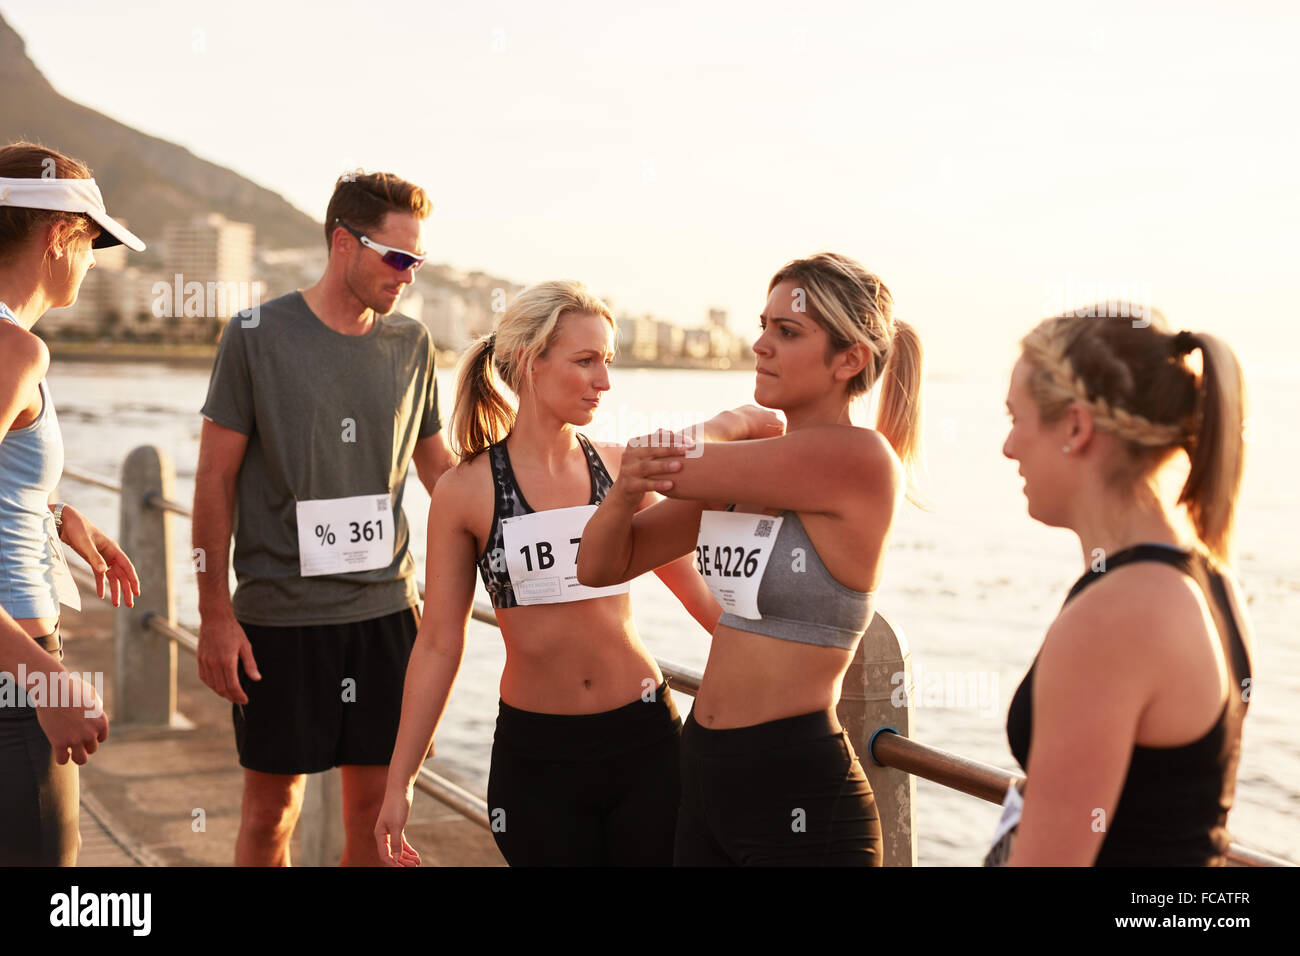 Runners relaxing after finishing the race. Marathon race runners taking a break after a run. - Stock Image